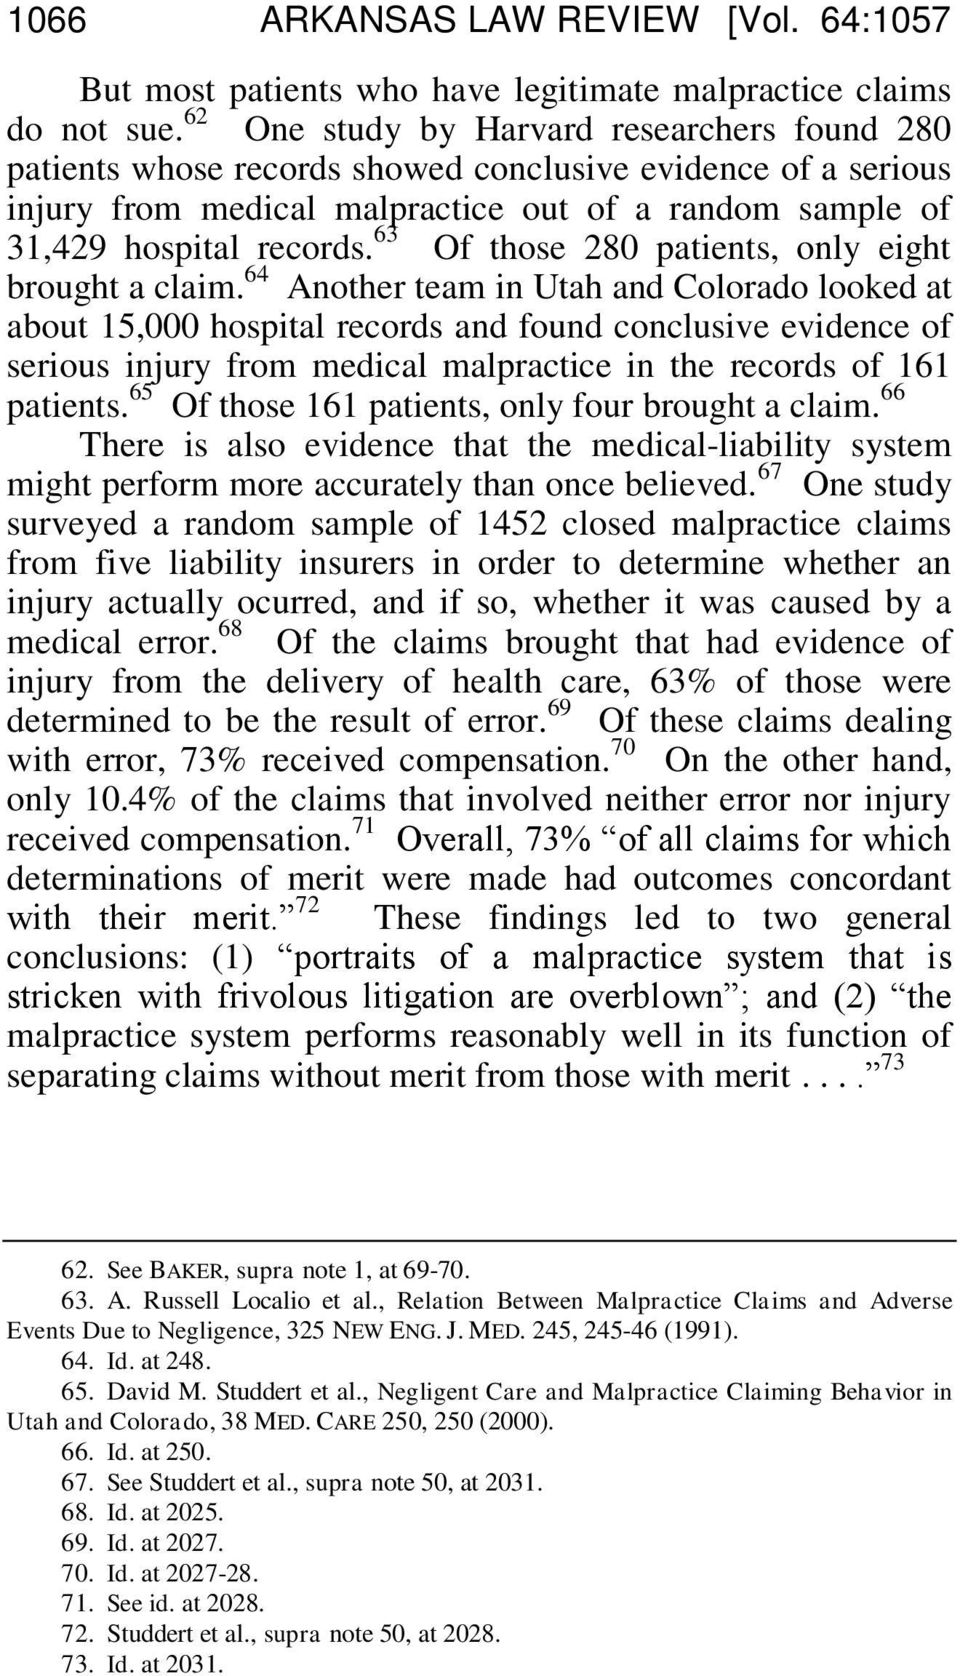 63 Of those 280 patients, only eight brought a claim.